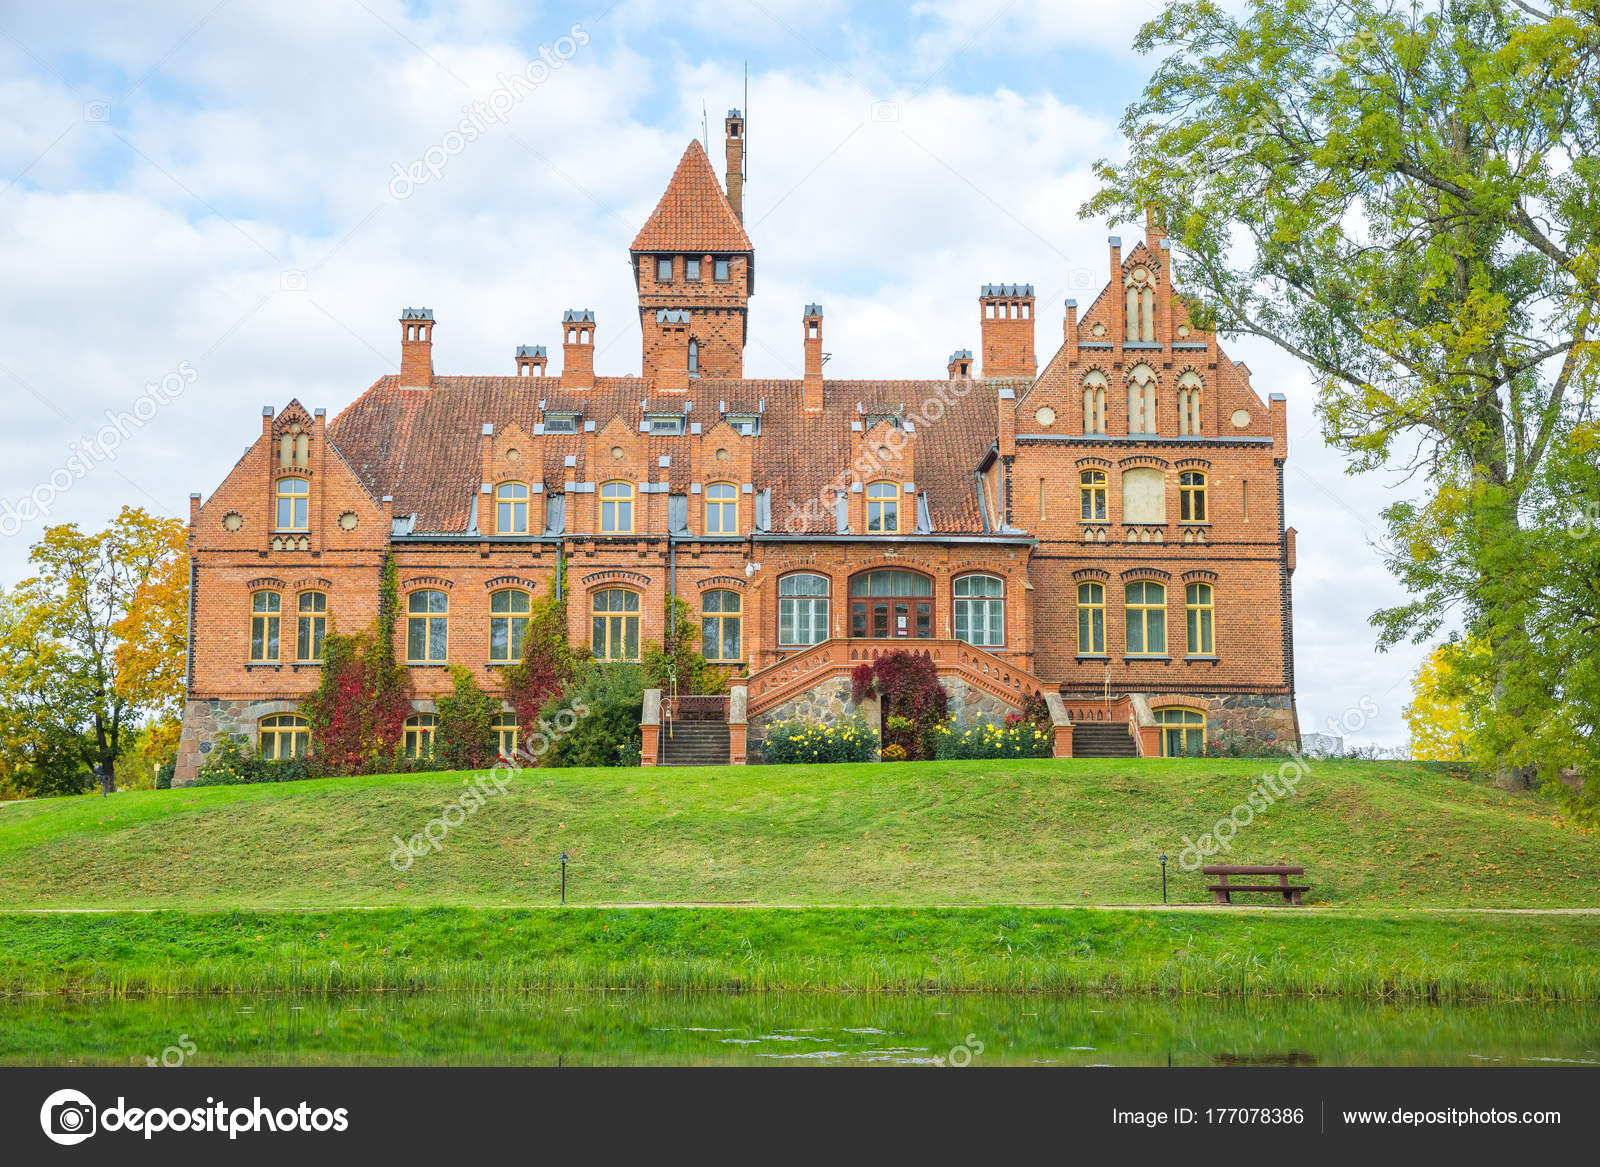 latvia old red castle with orange roof old building style 2015 its travel photo photo by ynos21